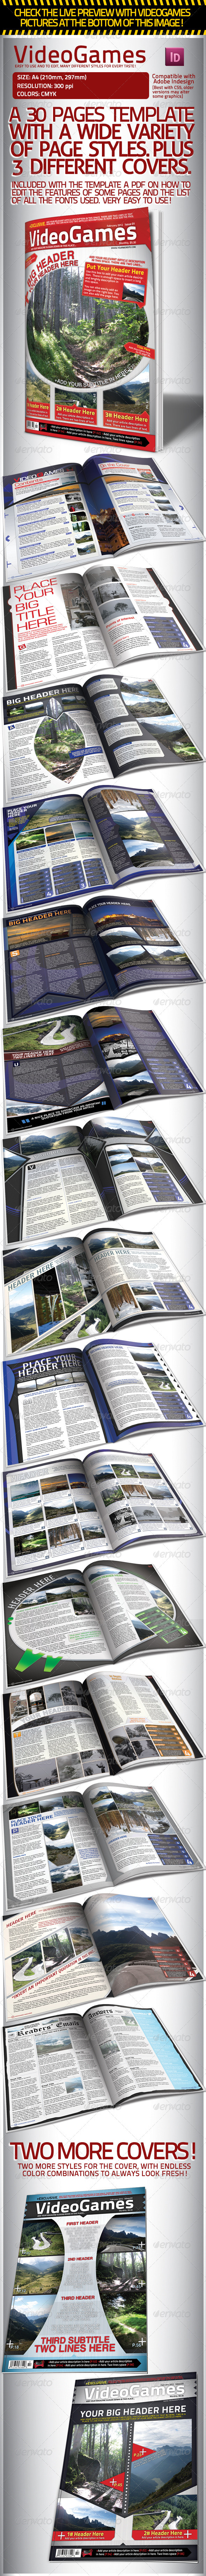 Graphic River Videogames Magazine Template with 3 Covers Print Templates -  Magazines 1528979